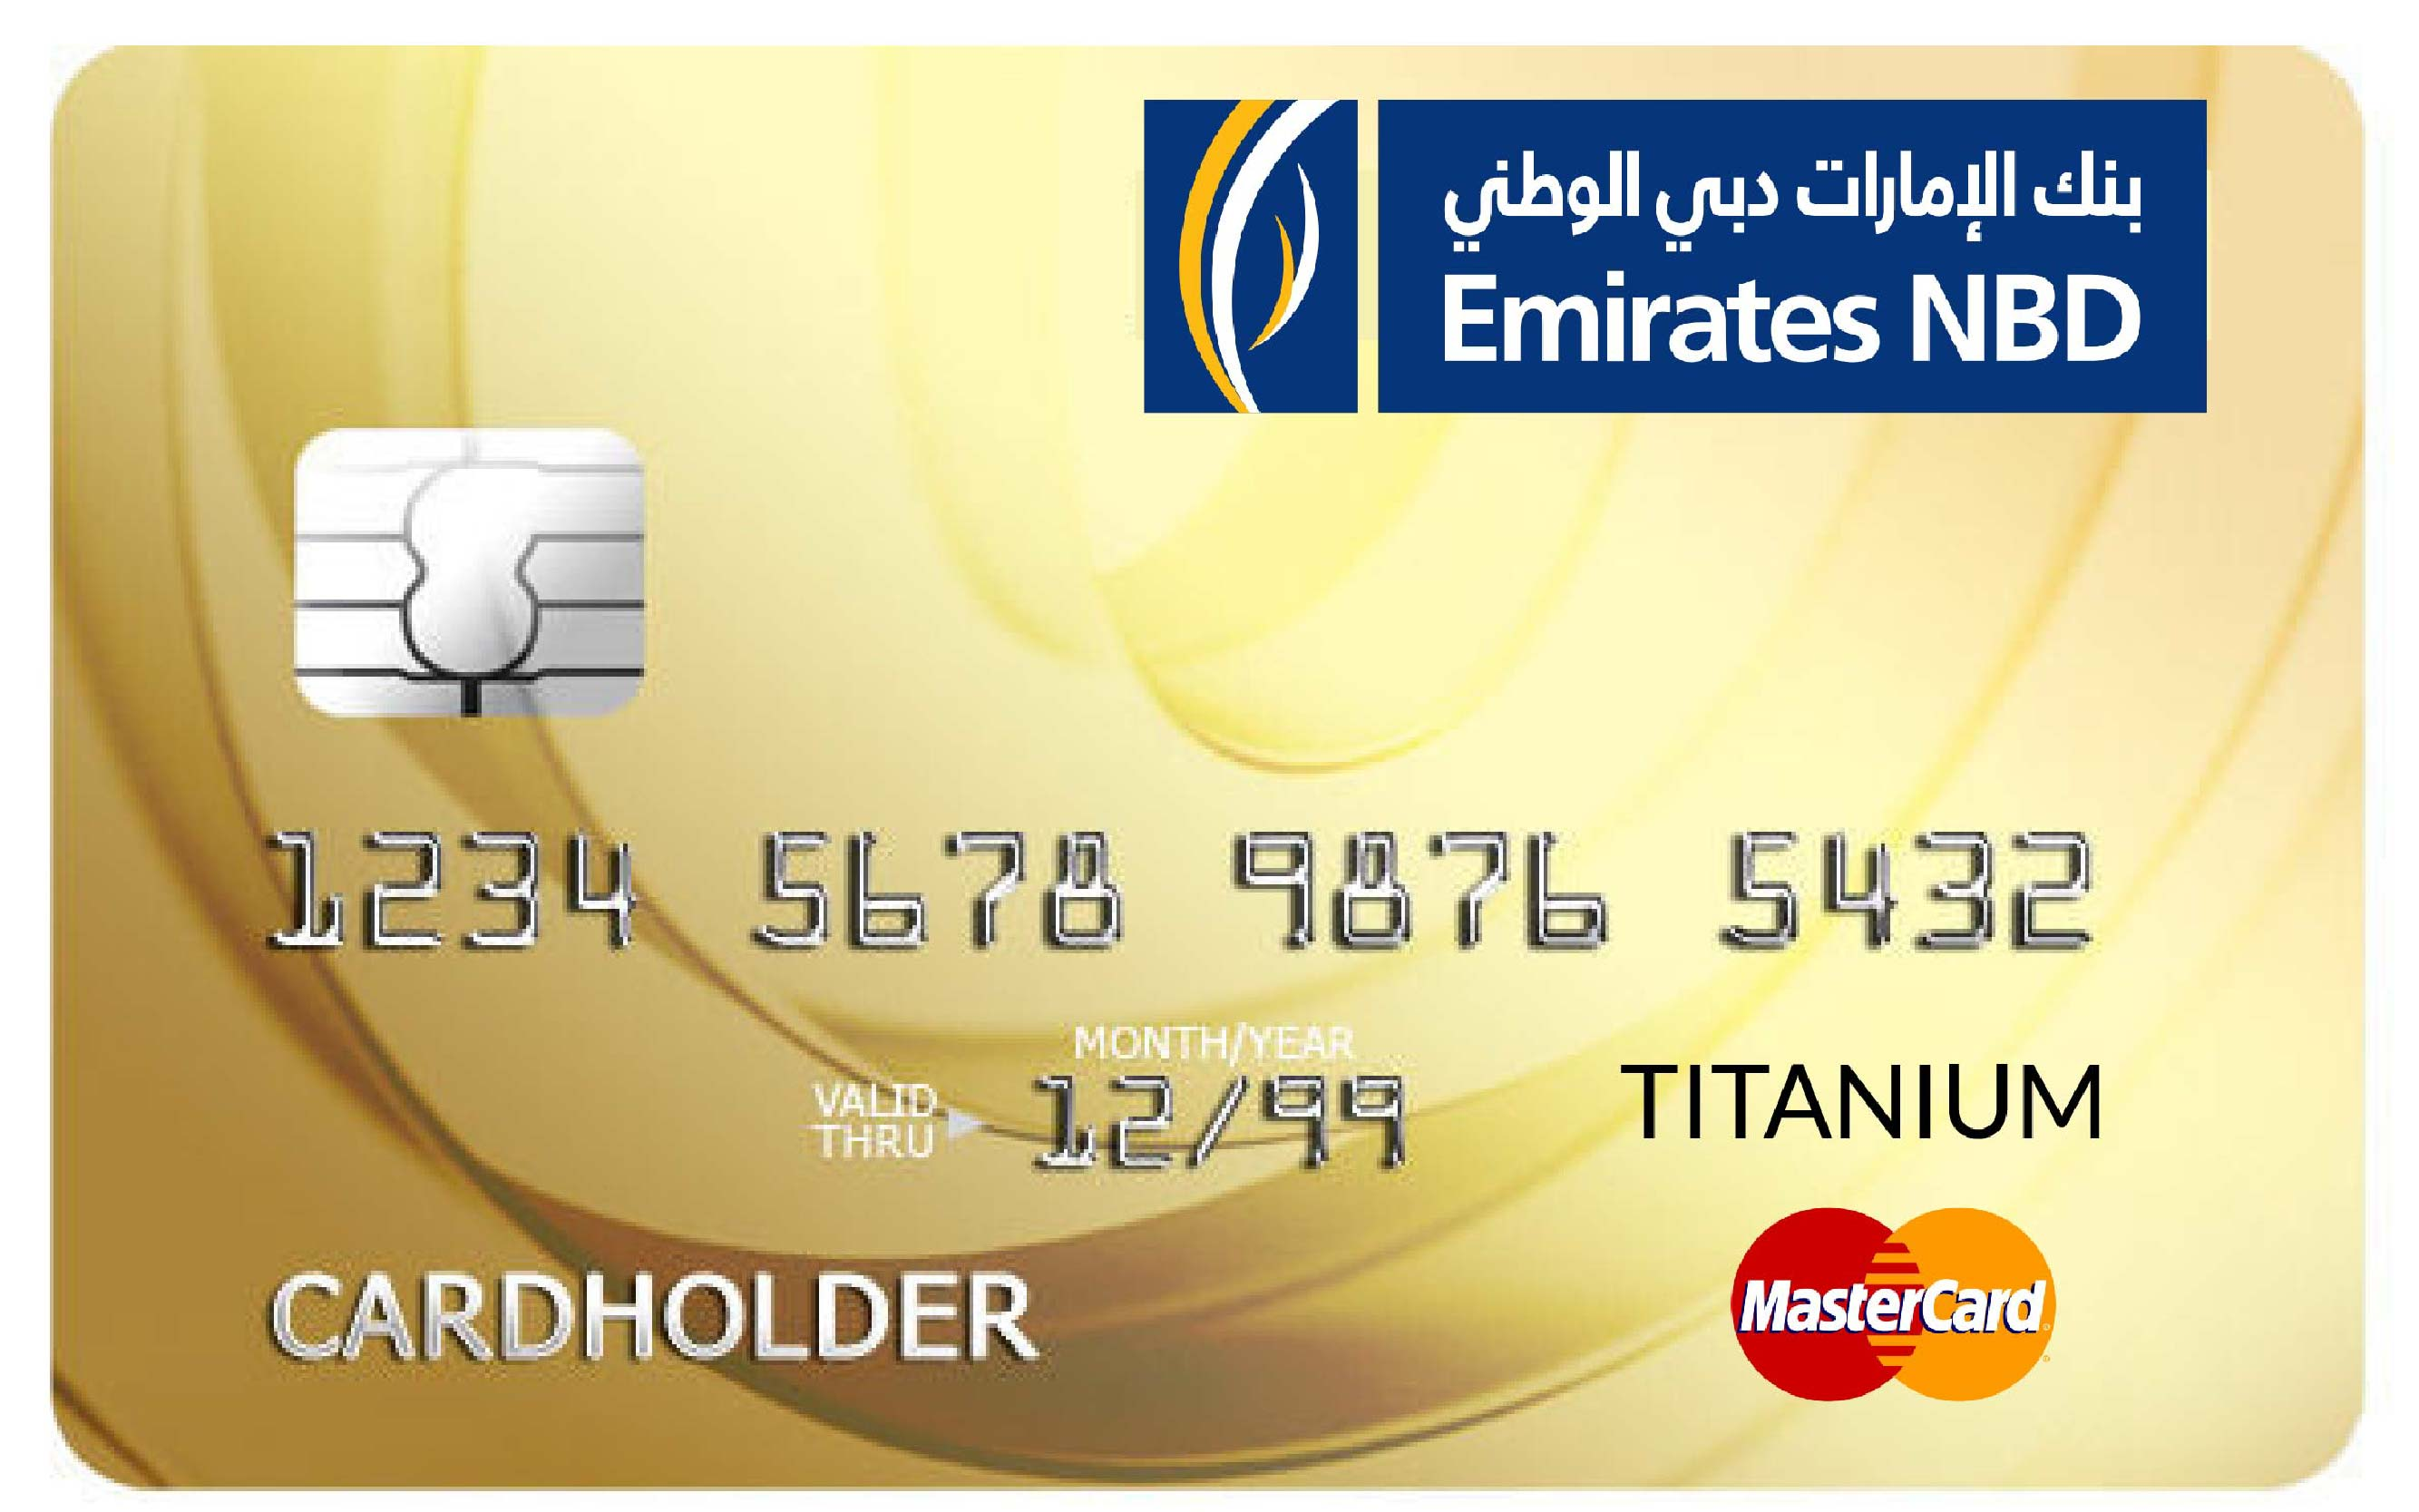 emirates nbd titanium credit card